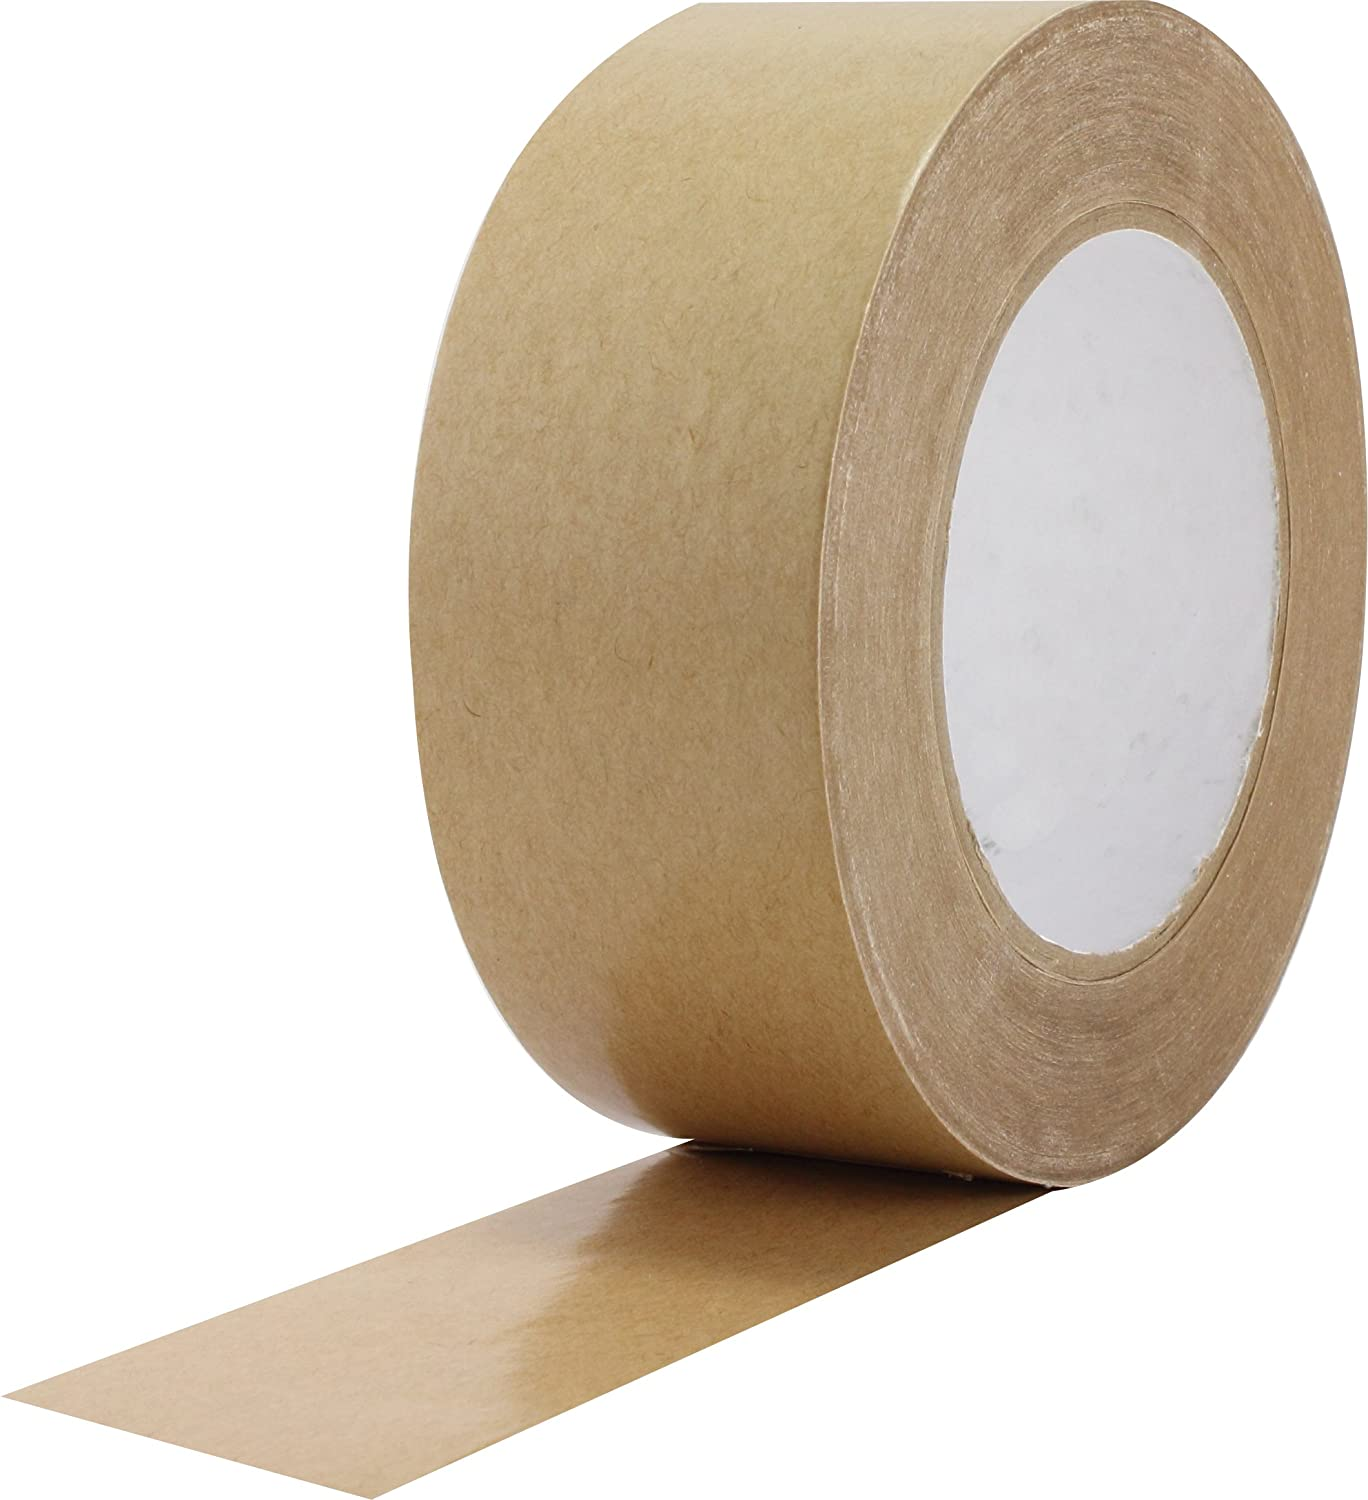 2 mil Thick ProTapes Pro 155  Acrylic Adhesive Transfer Tape 60 yds Length x 3 Width 60 yds Length x 3 Width ProTapes /& Specialties Pro-155-2-3x60-C Clear Pack of 1